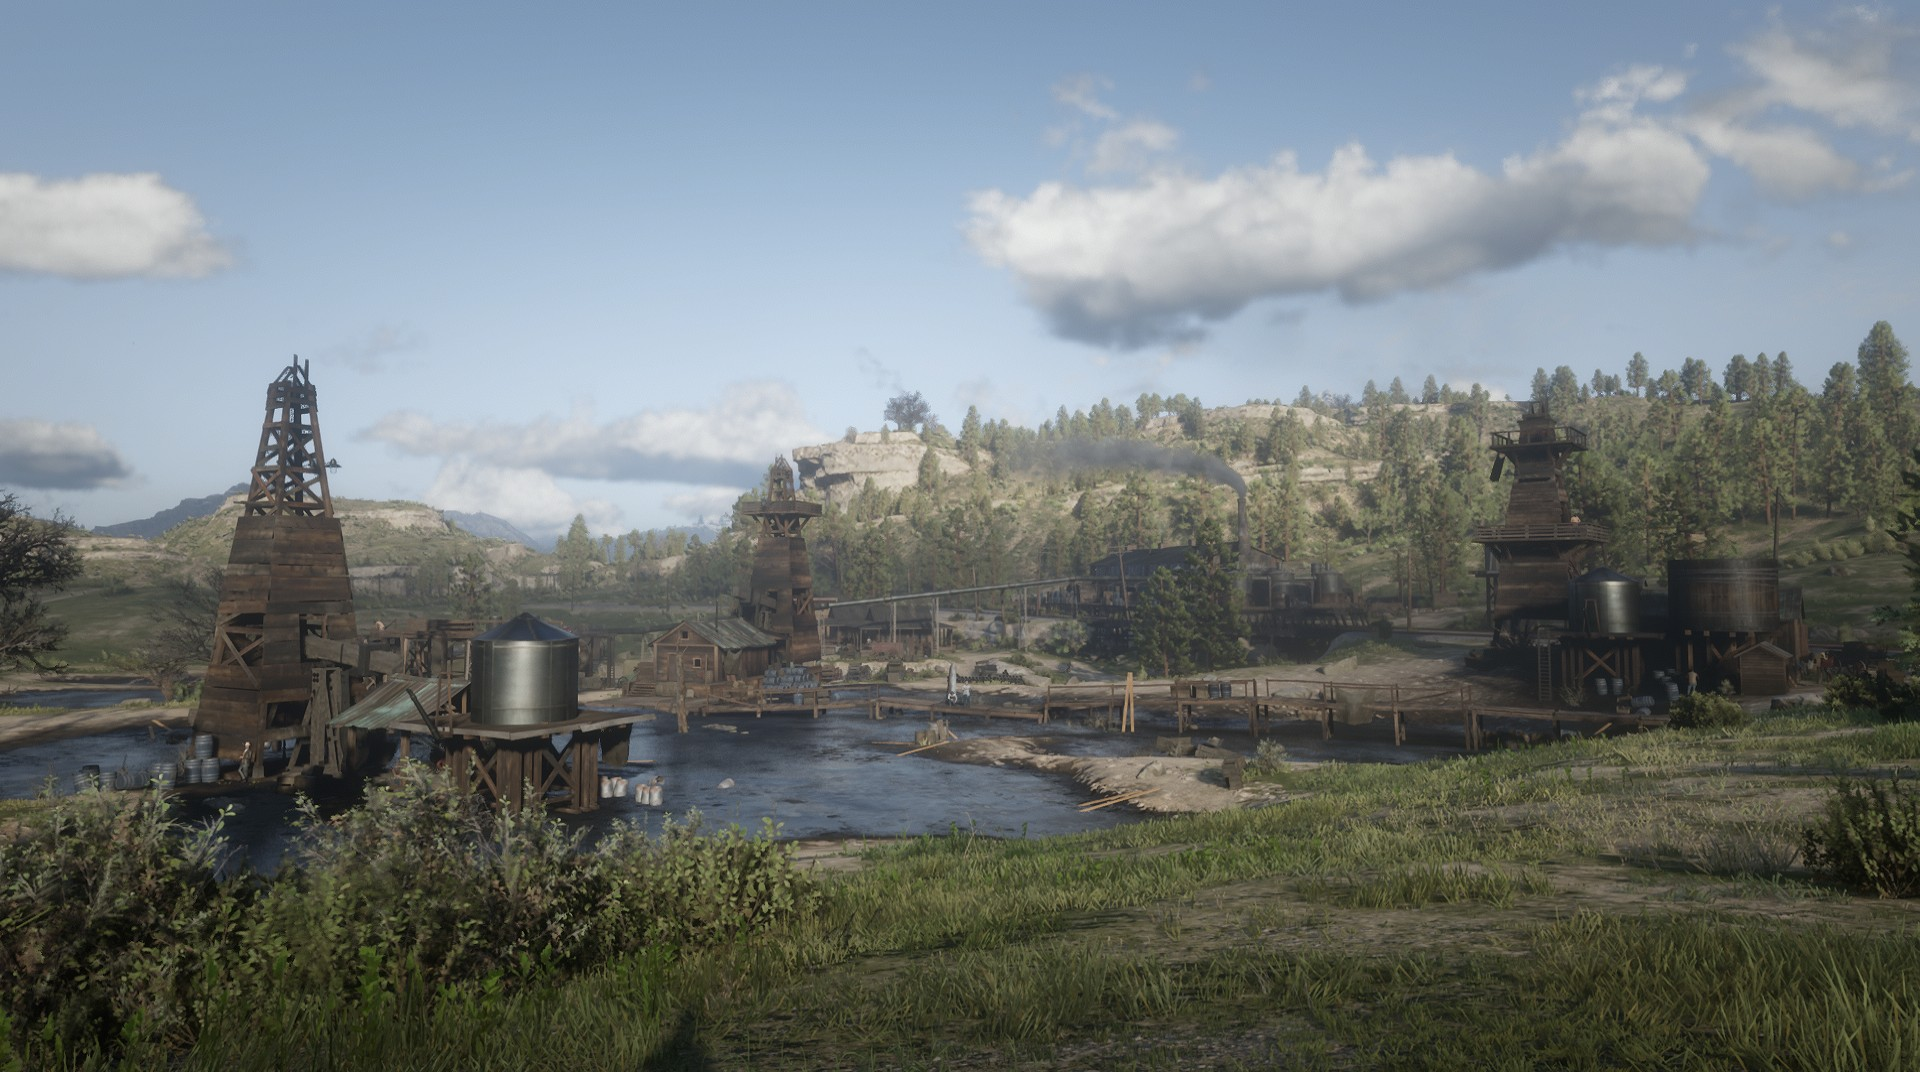 The Heartlands - Red Dead Redemption 2 - image 1 - student project